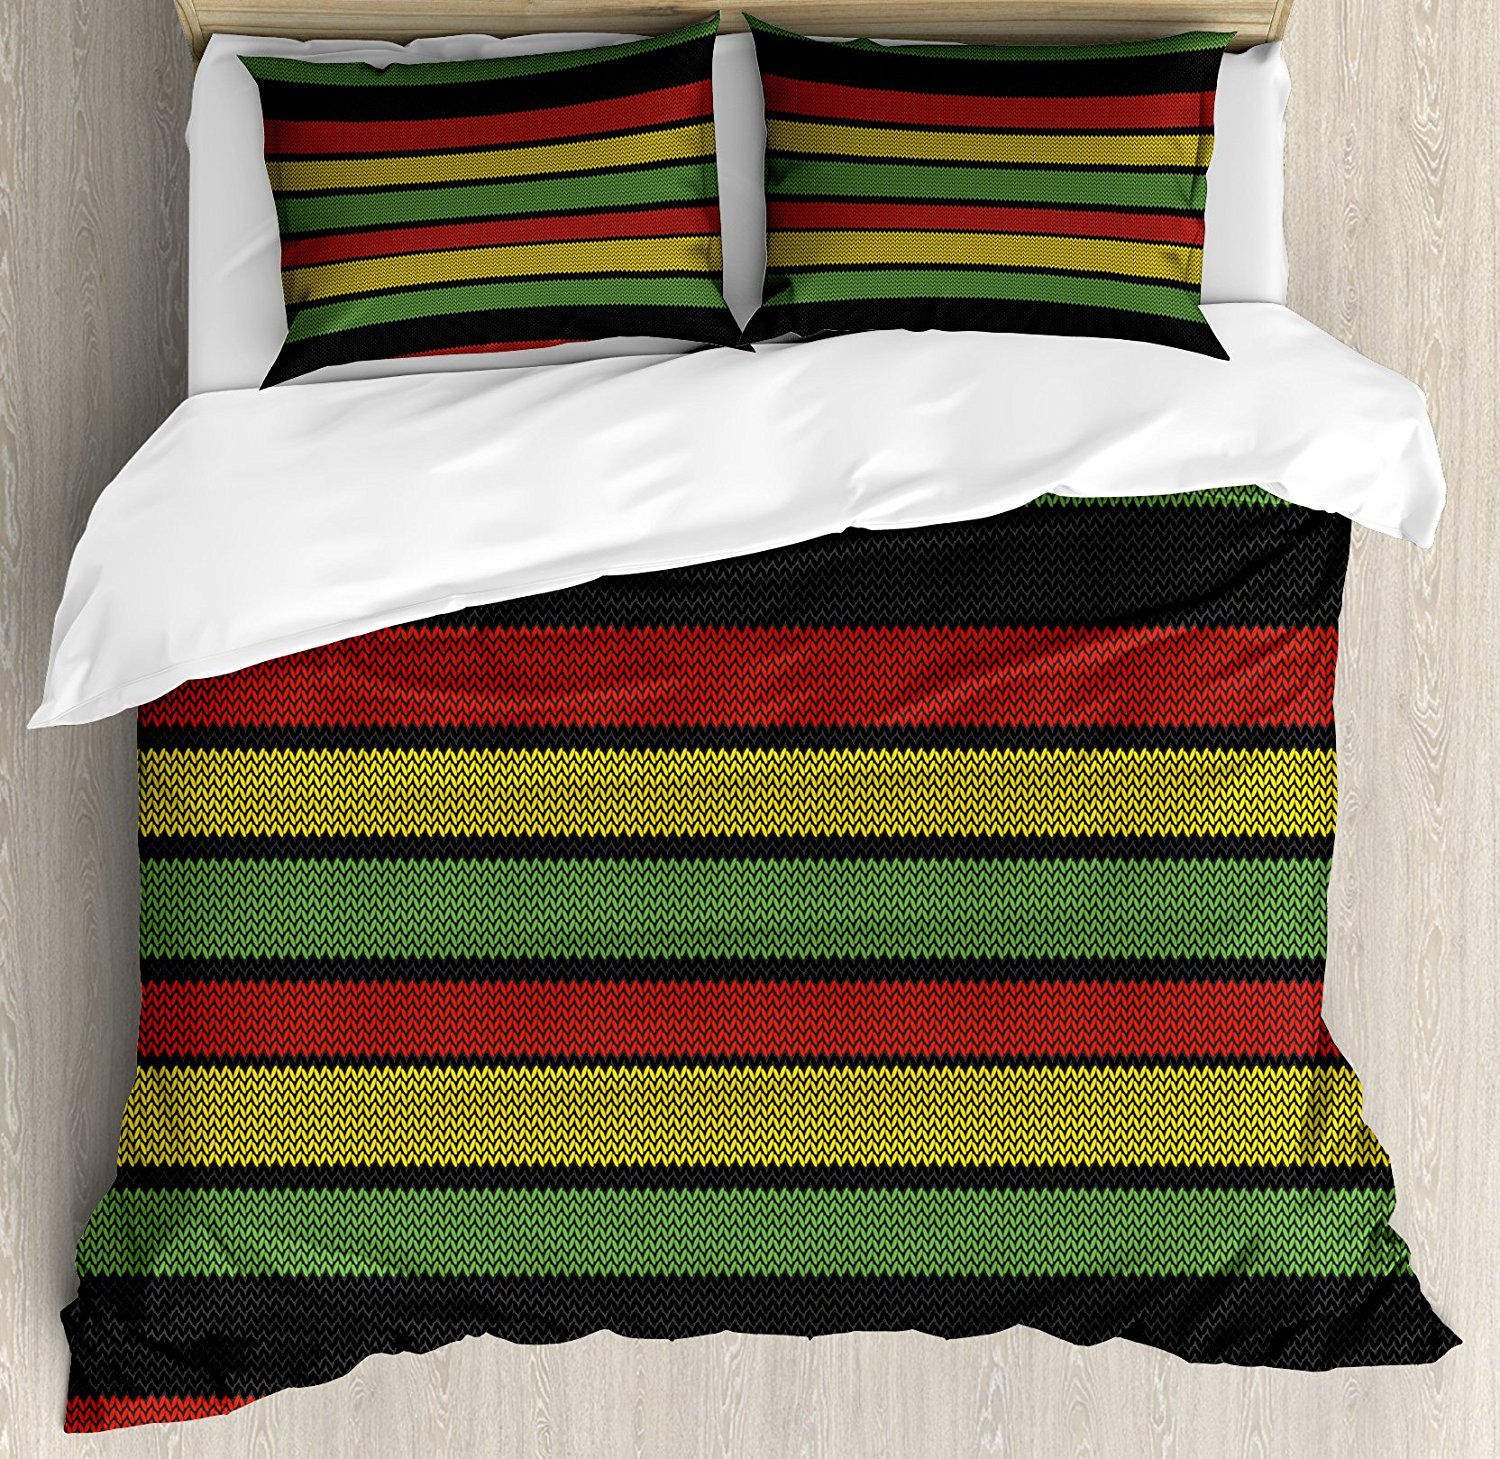 Buy Duvet Cover Us 122 98 32 Off Aliexpress Buy Jamaican Duvet Cover Set Knitted Effect Rastafarian Stripes Abstract Caribbean Culture Elements Tropical Decor